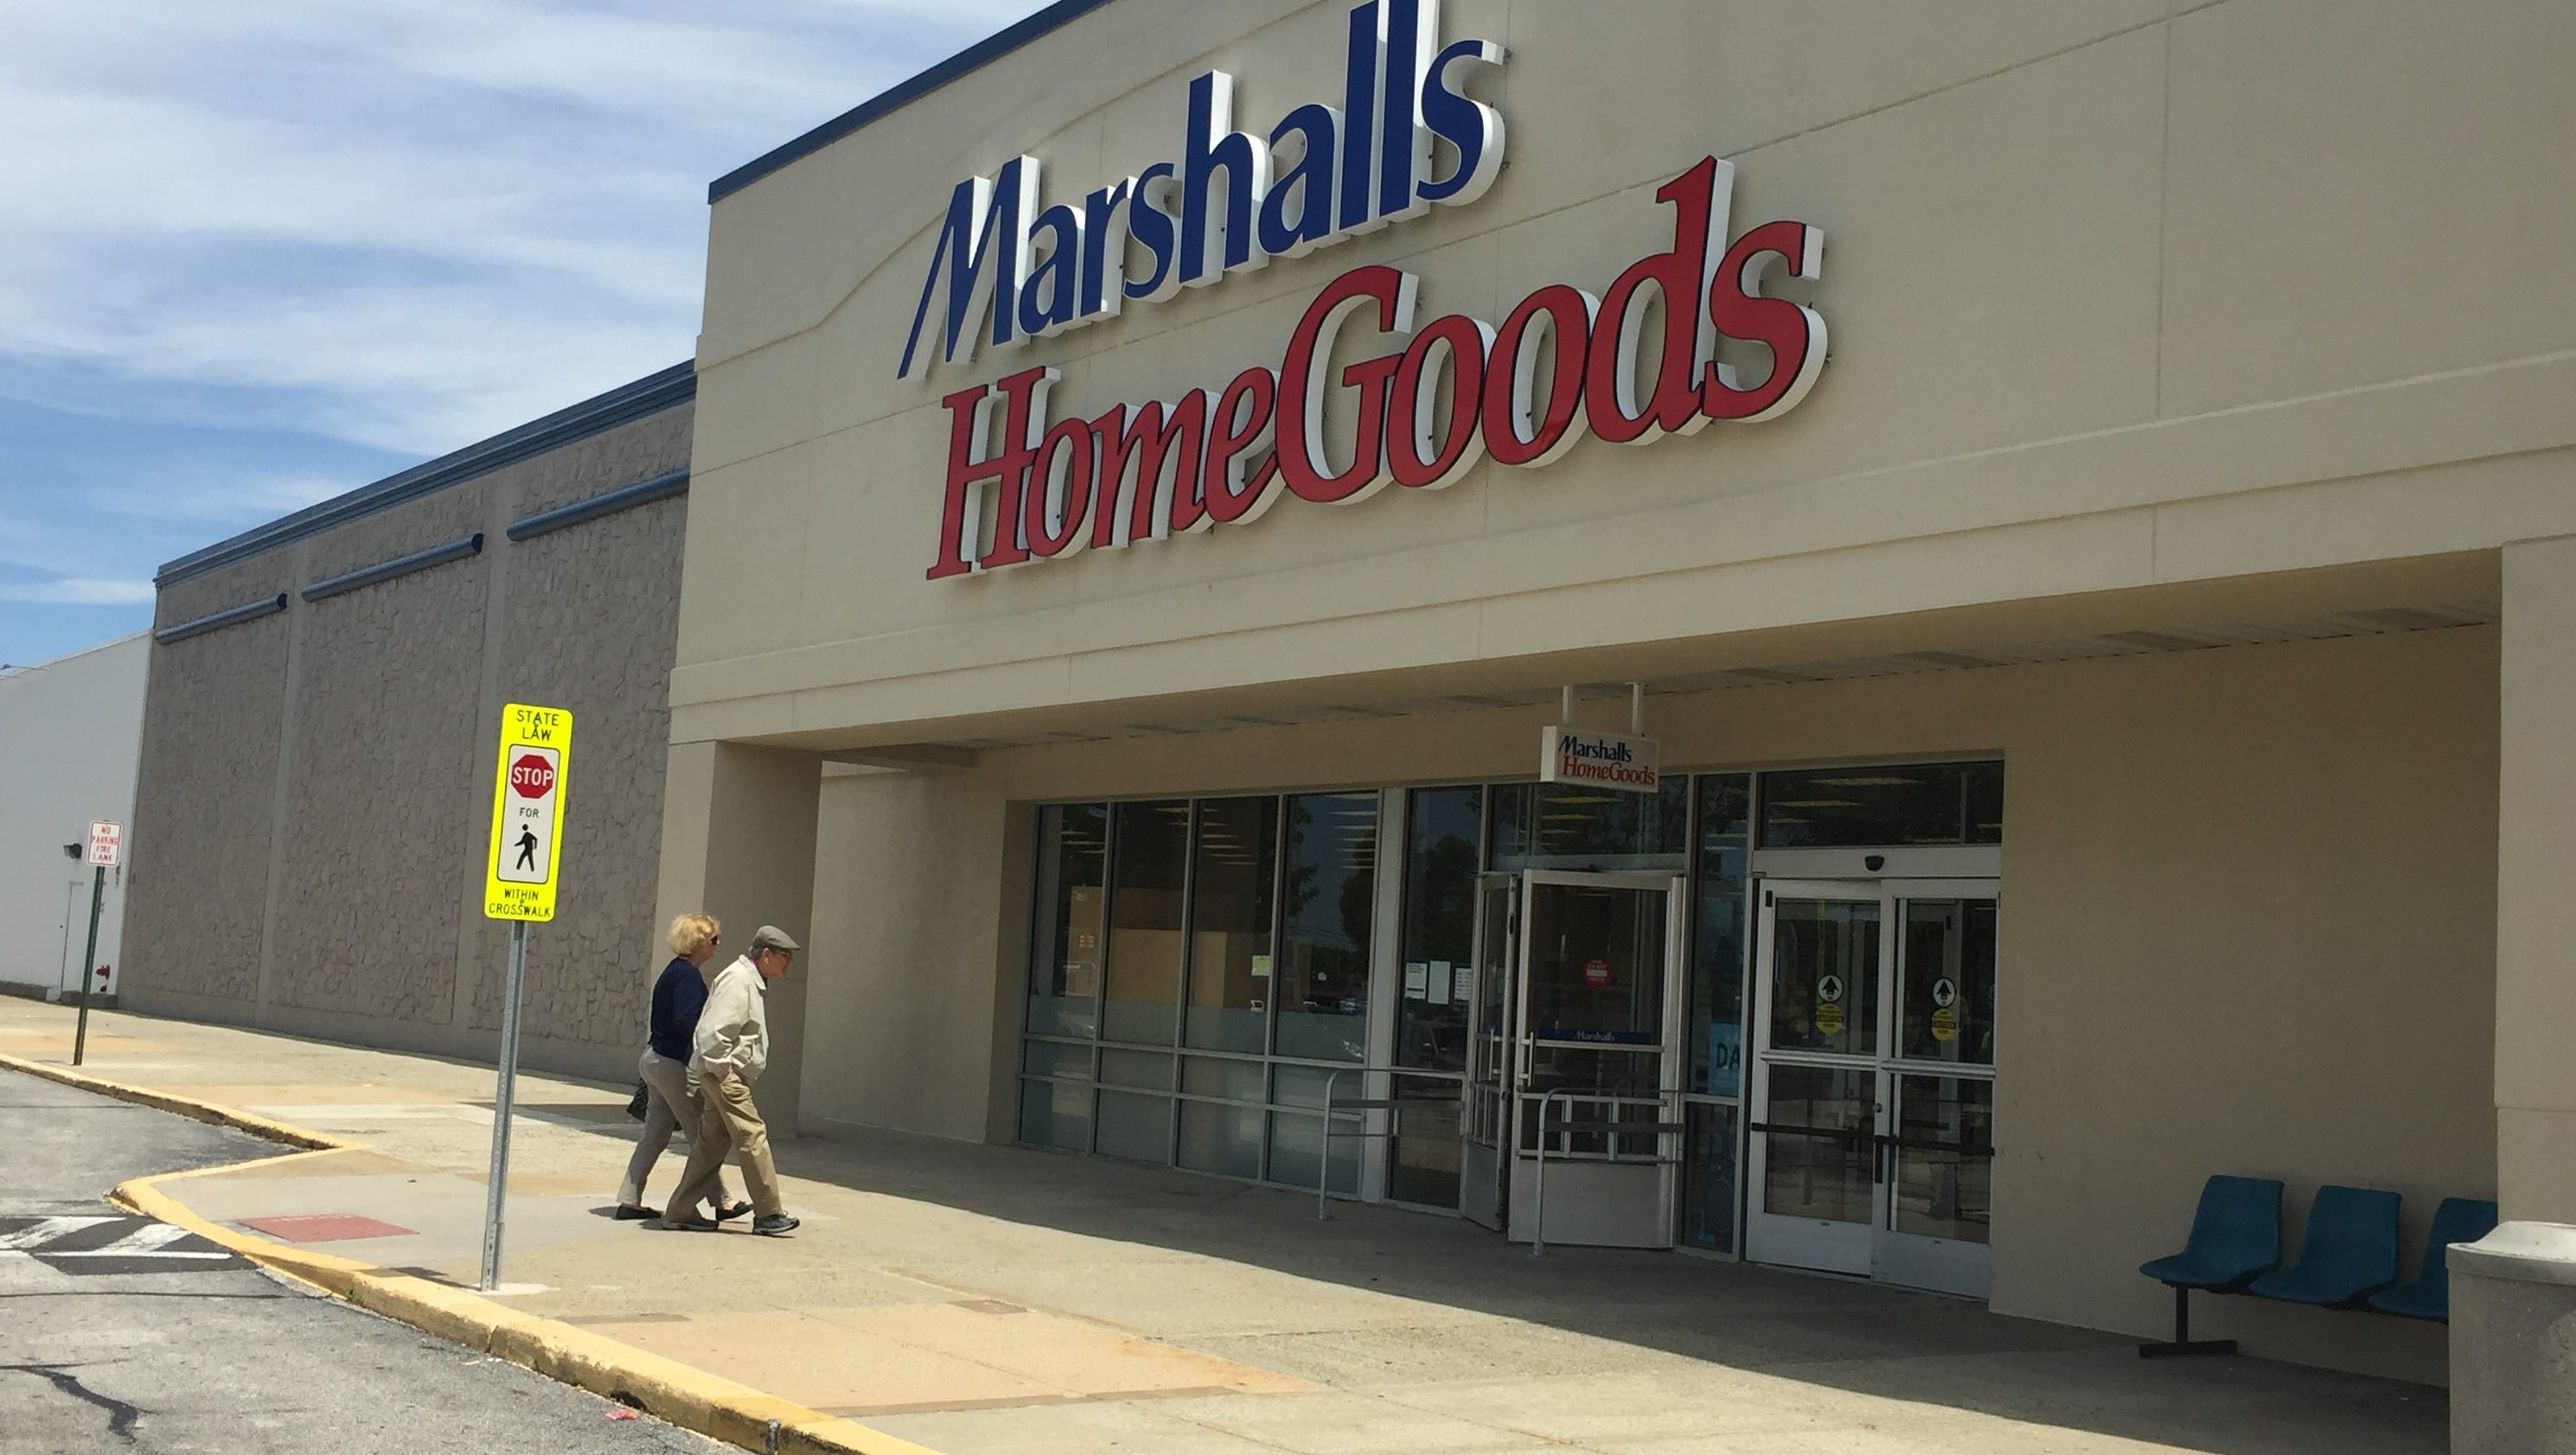 home goods joins marshalls in burlington store. Black Bedroom Furniture Sets. Home Design Ideas